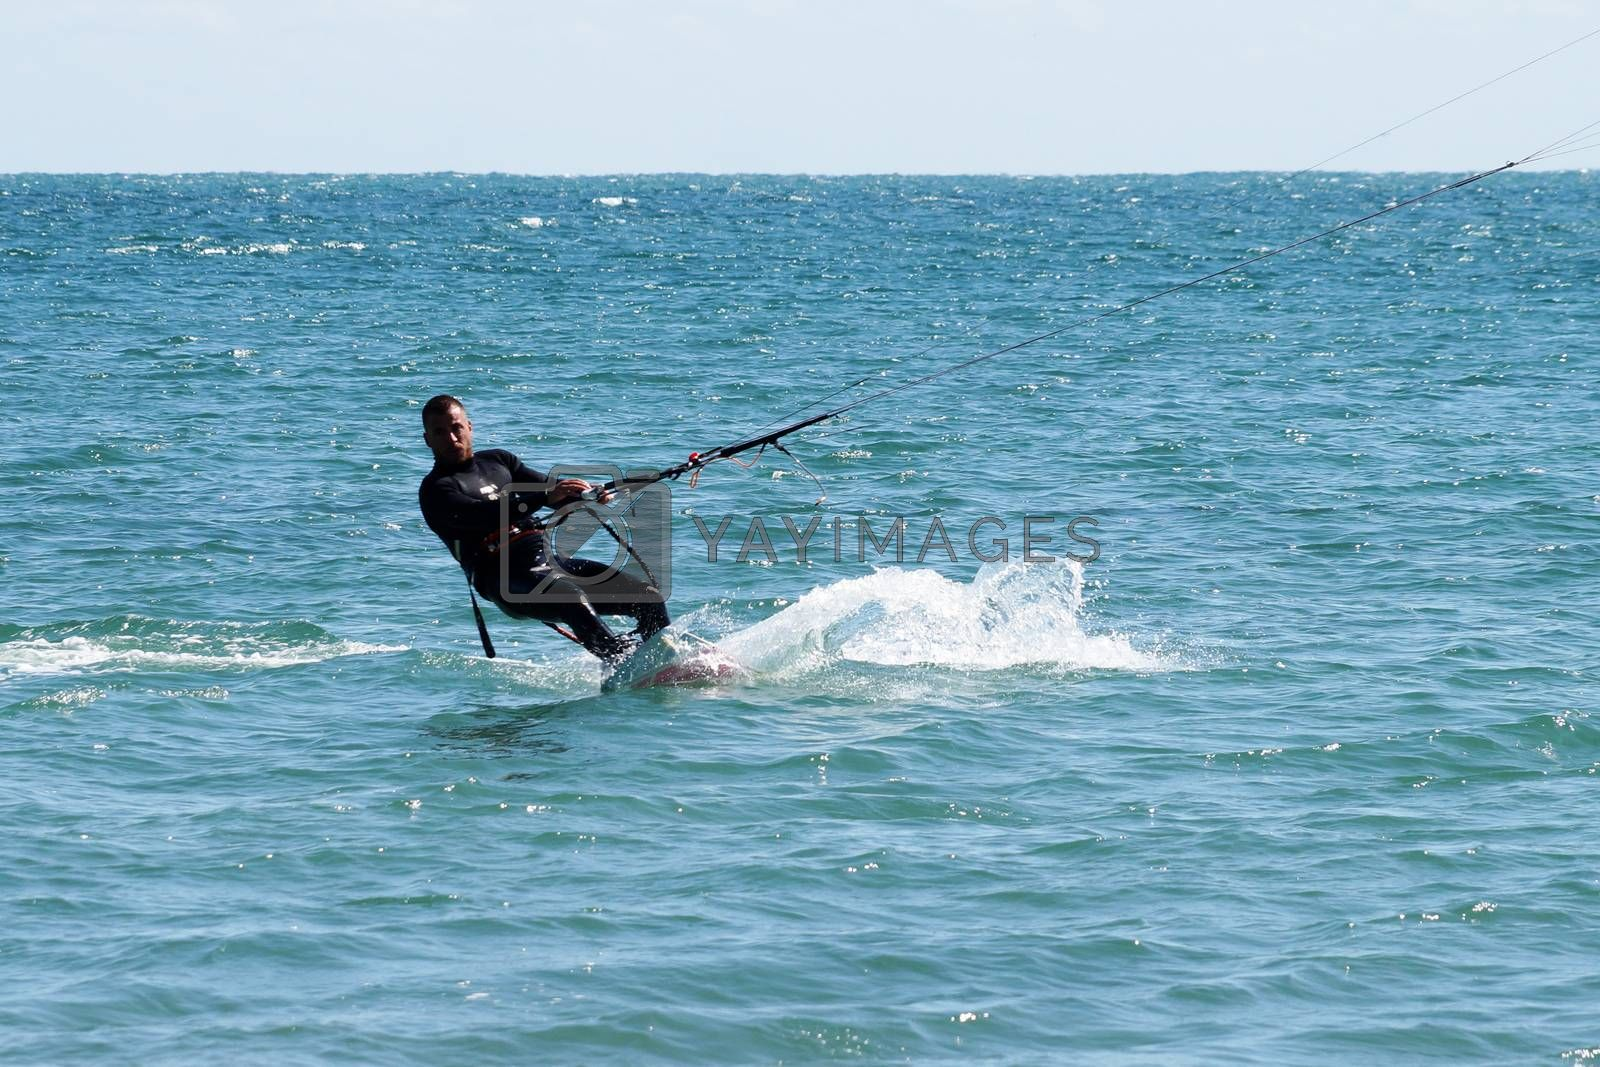 Varna, Bulgaria - September, 19, 2020: a man is kiting the sea against the background of the beachVarna